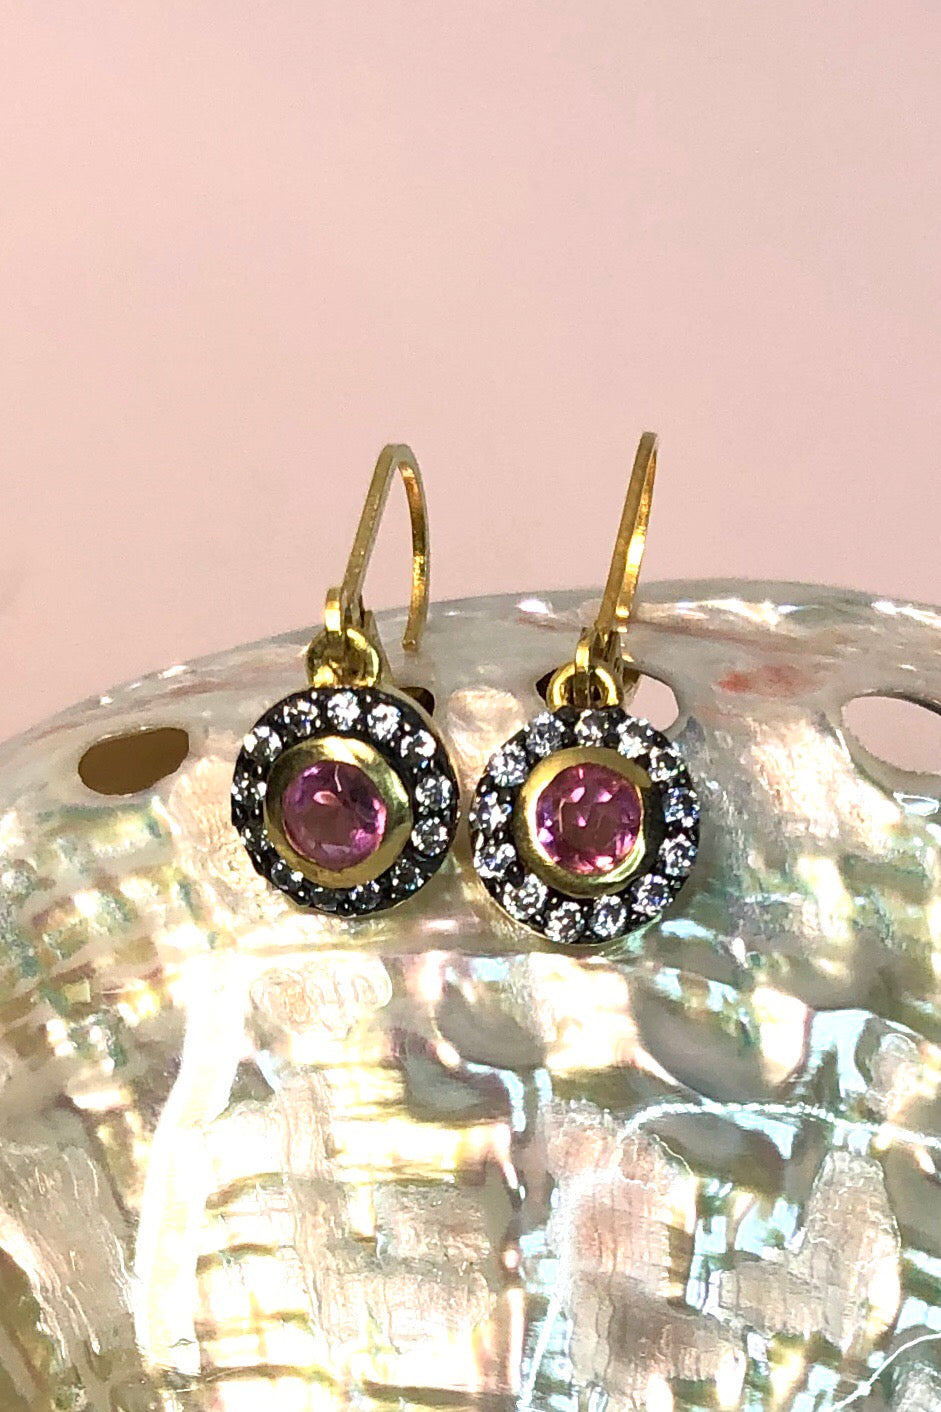 Oracle Earrings Honore is a . Vintage design modern earrings featuring Hydro garnet and Set in 9ct gold vermeil.